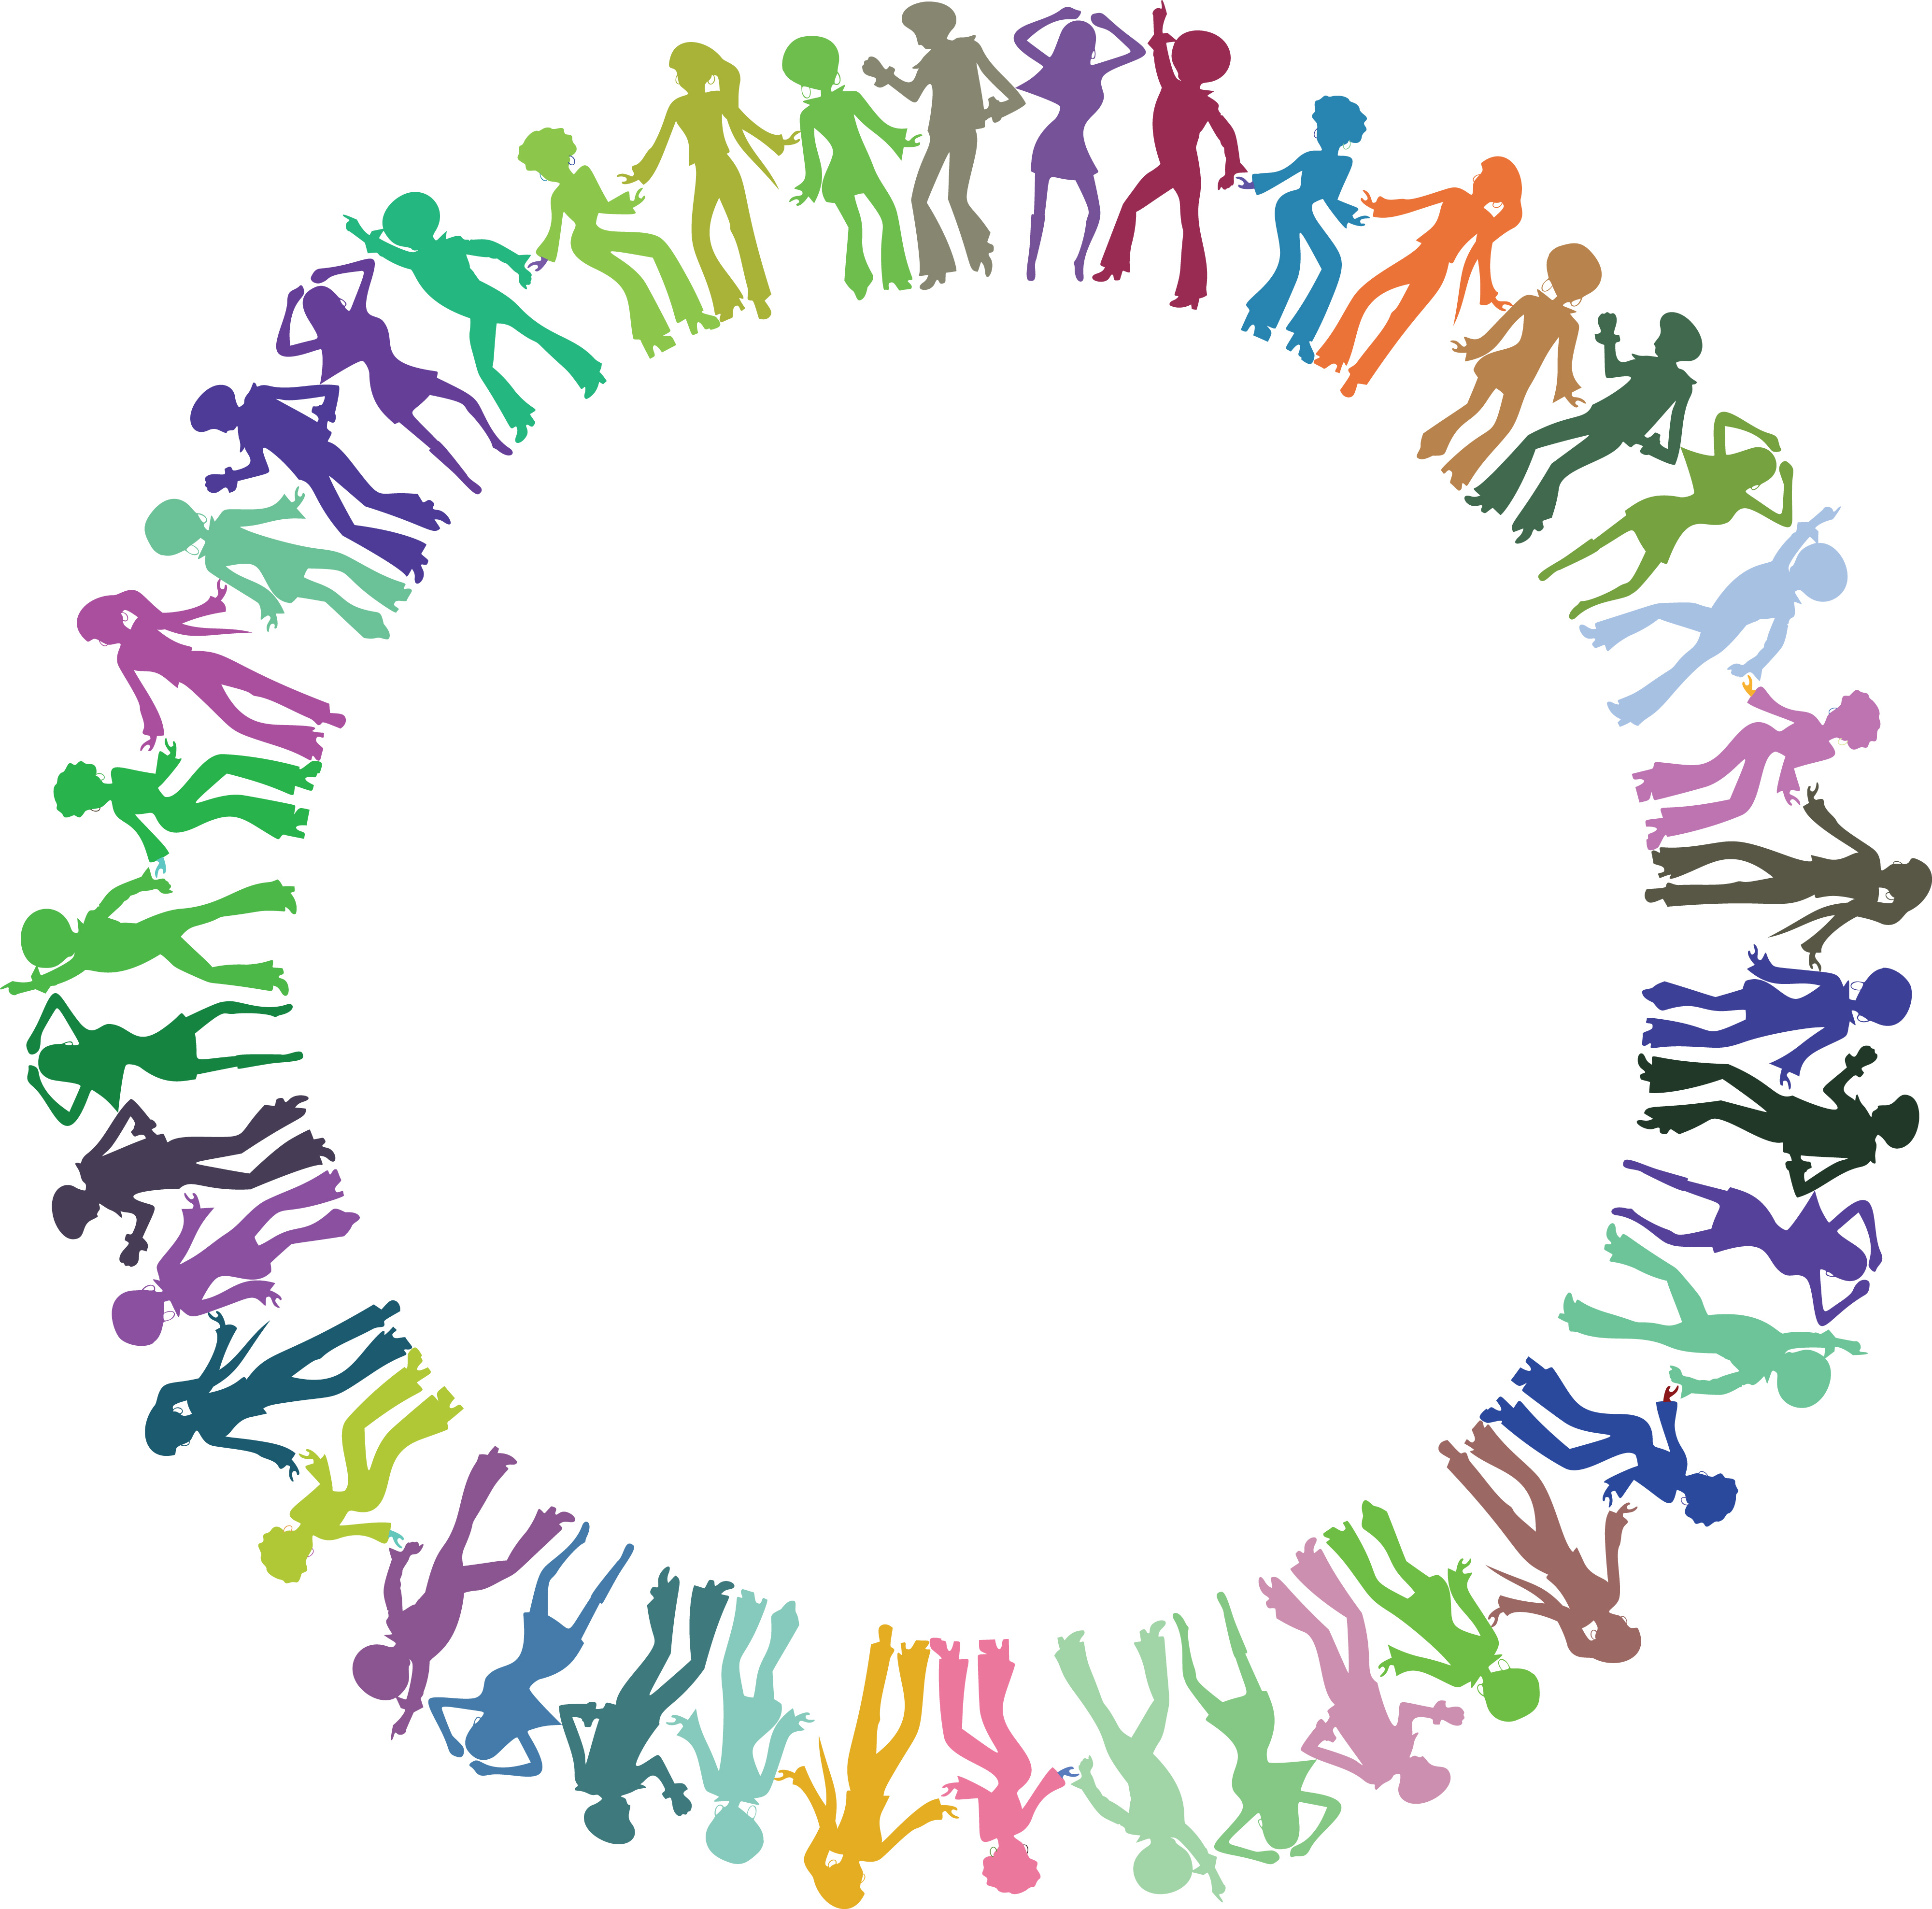 Free Clipart of a round border frame of colorful disco dancers.